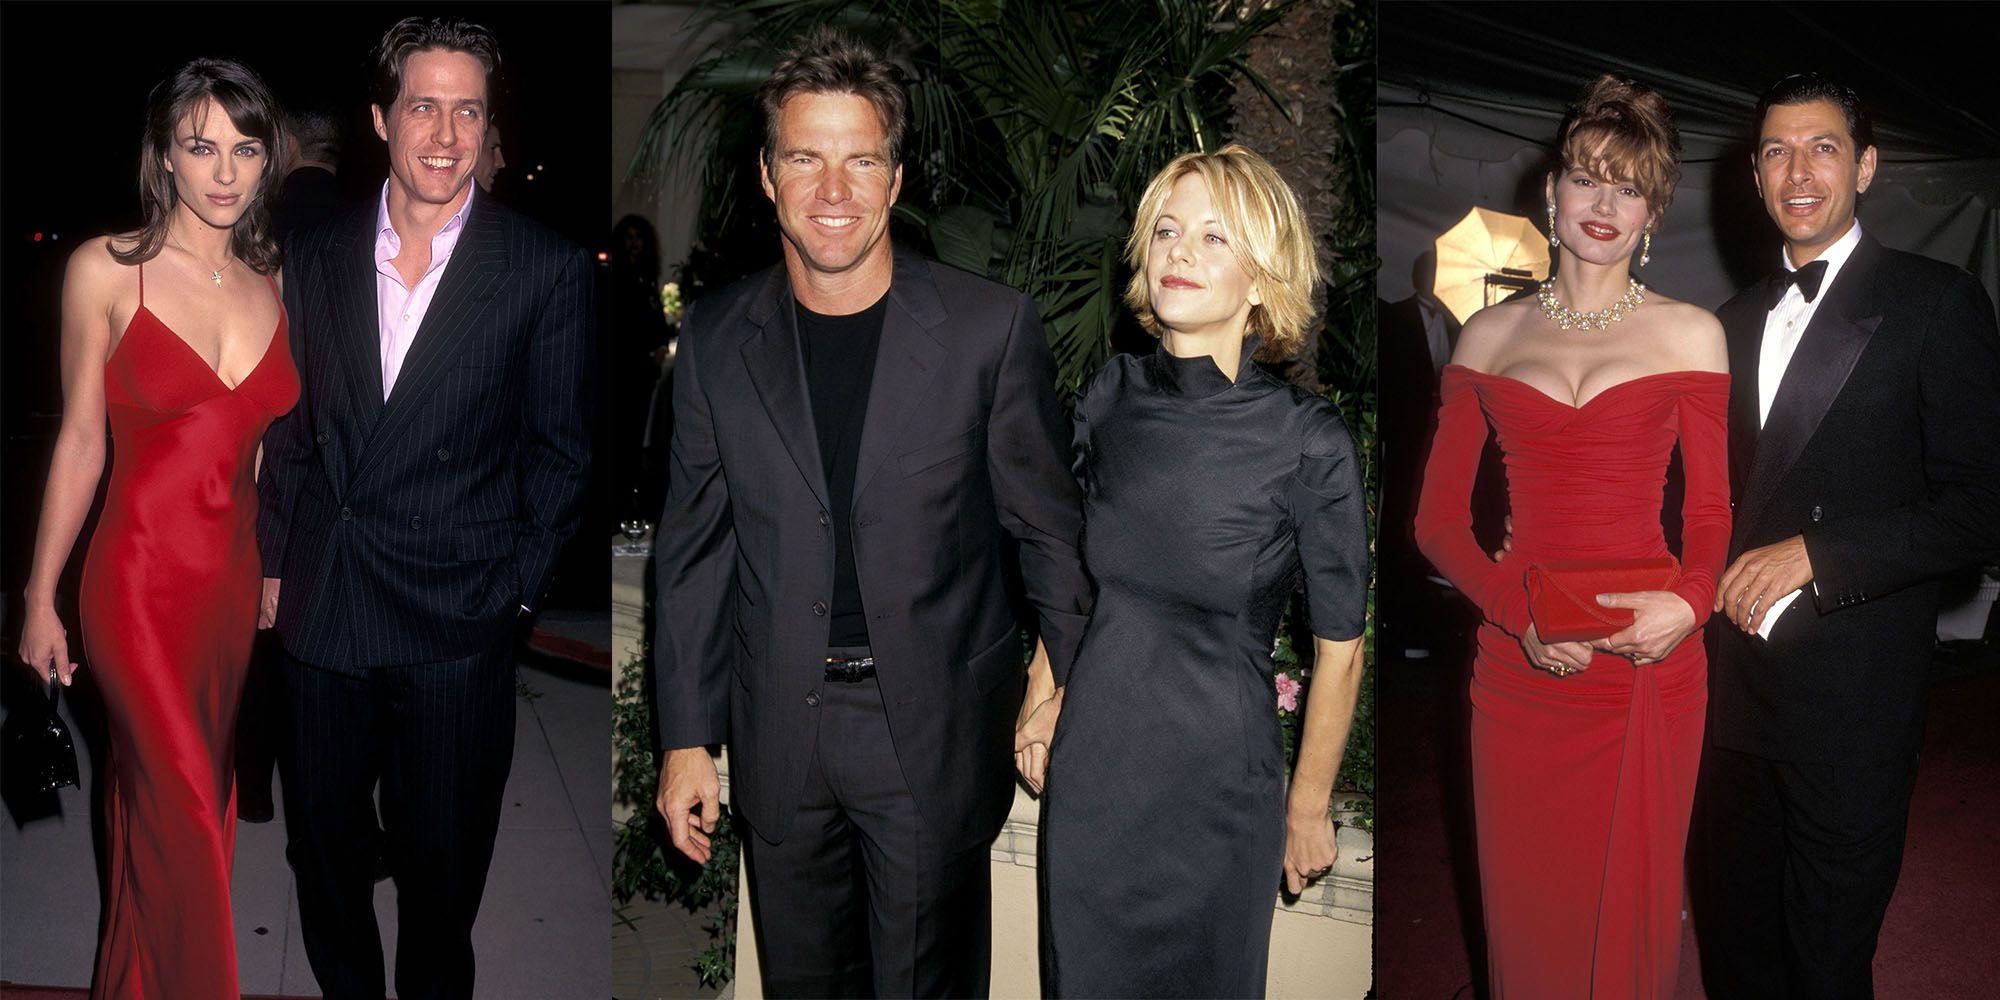 27 Celebrity Couples Who Didn't Stand the Test of Time (But Are Still Iconic)